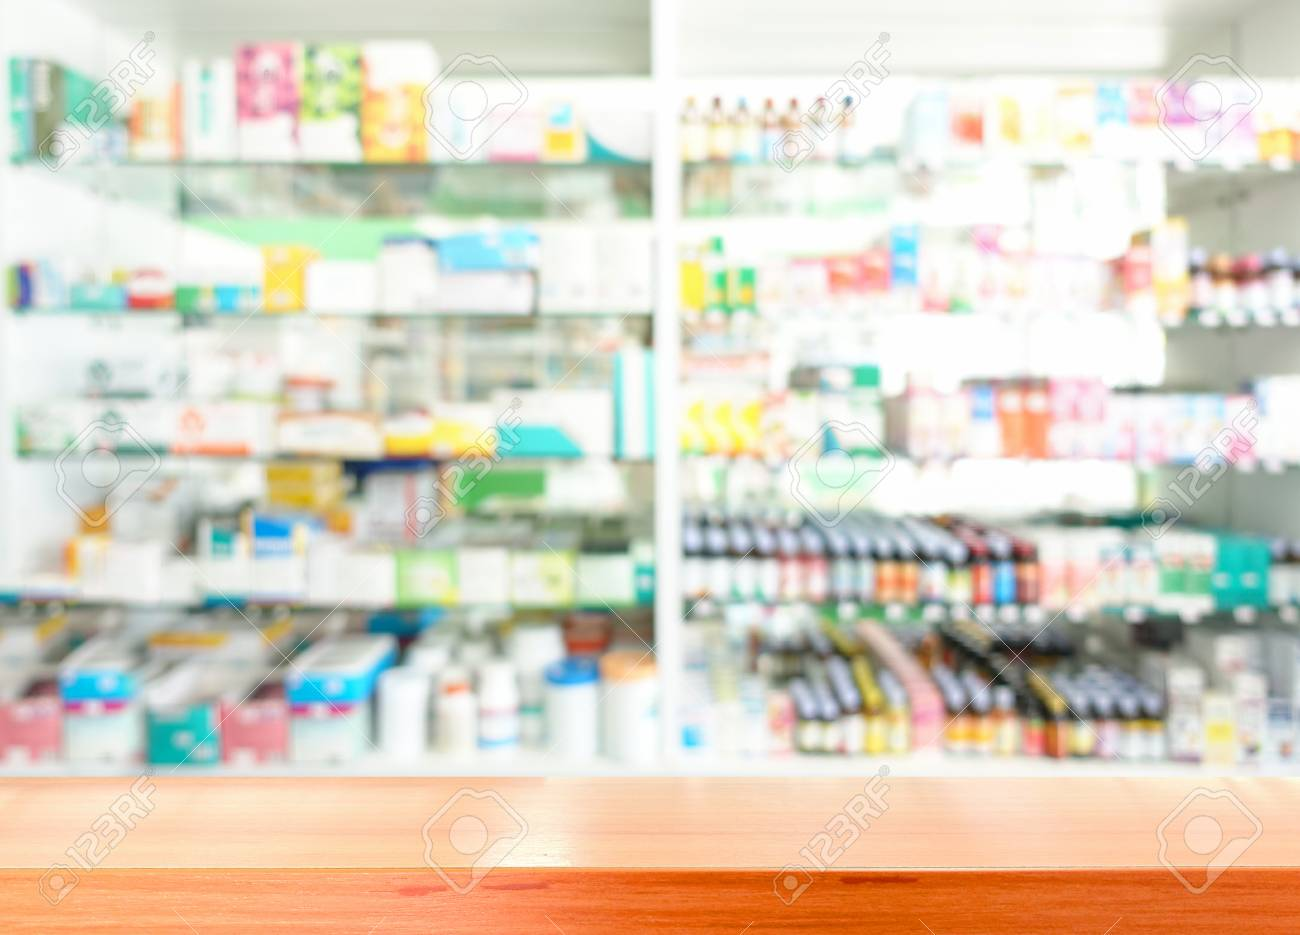 Wooden Tabletop With Blurred Of Pharmacy Shop Stock Photo Picture